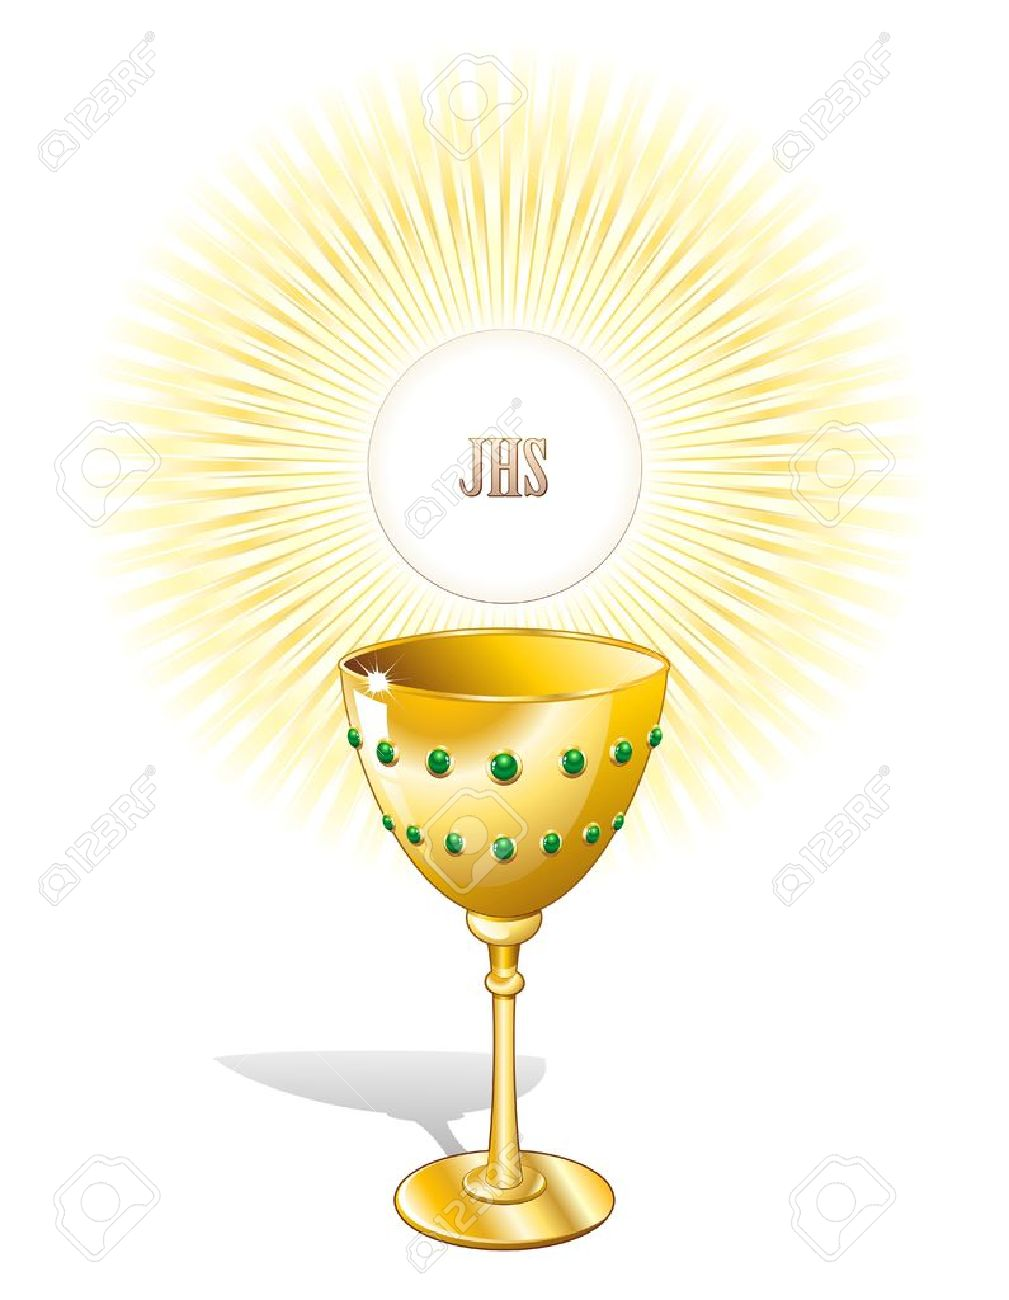 Religion Chalice Cup and Host.